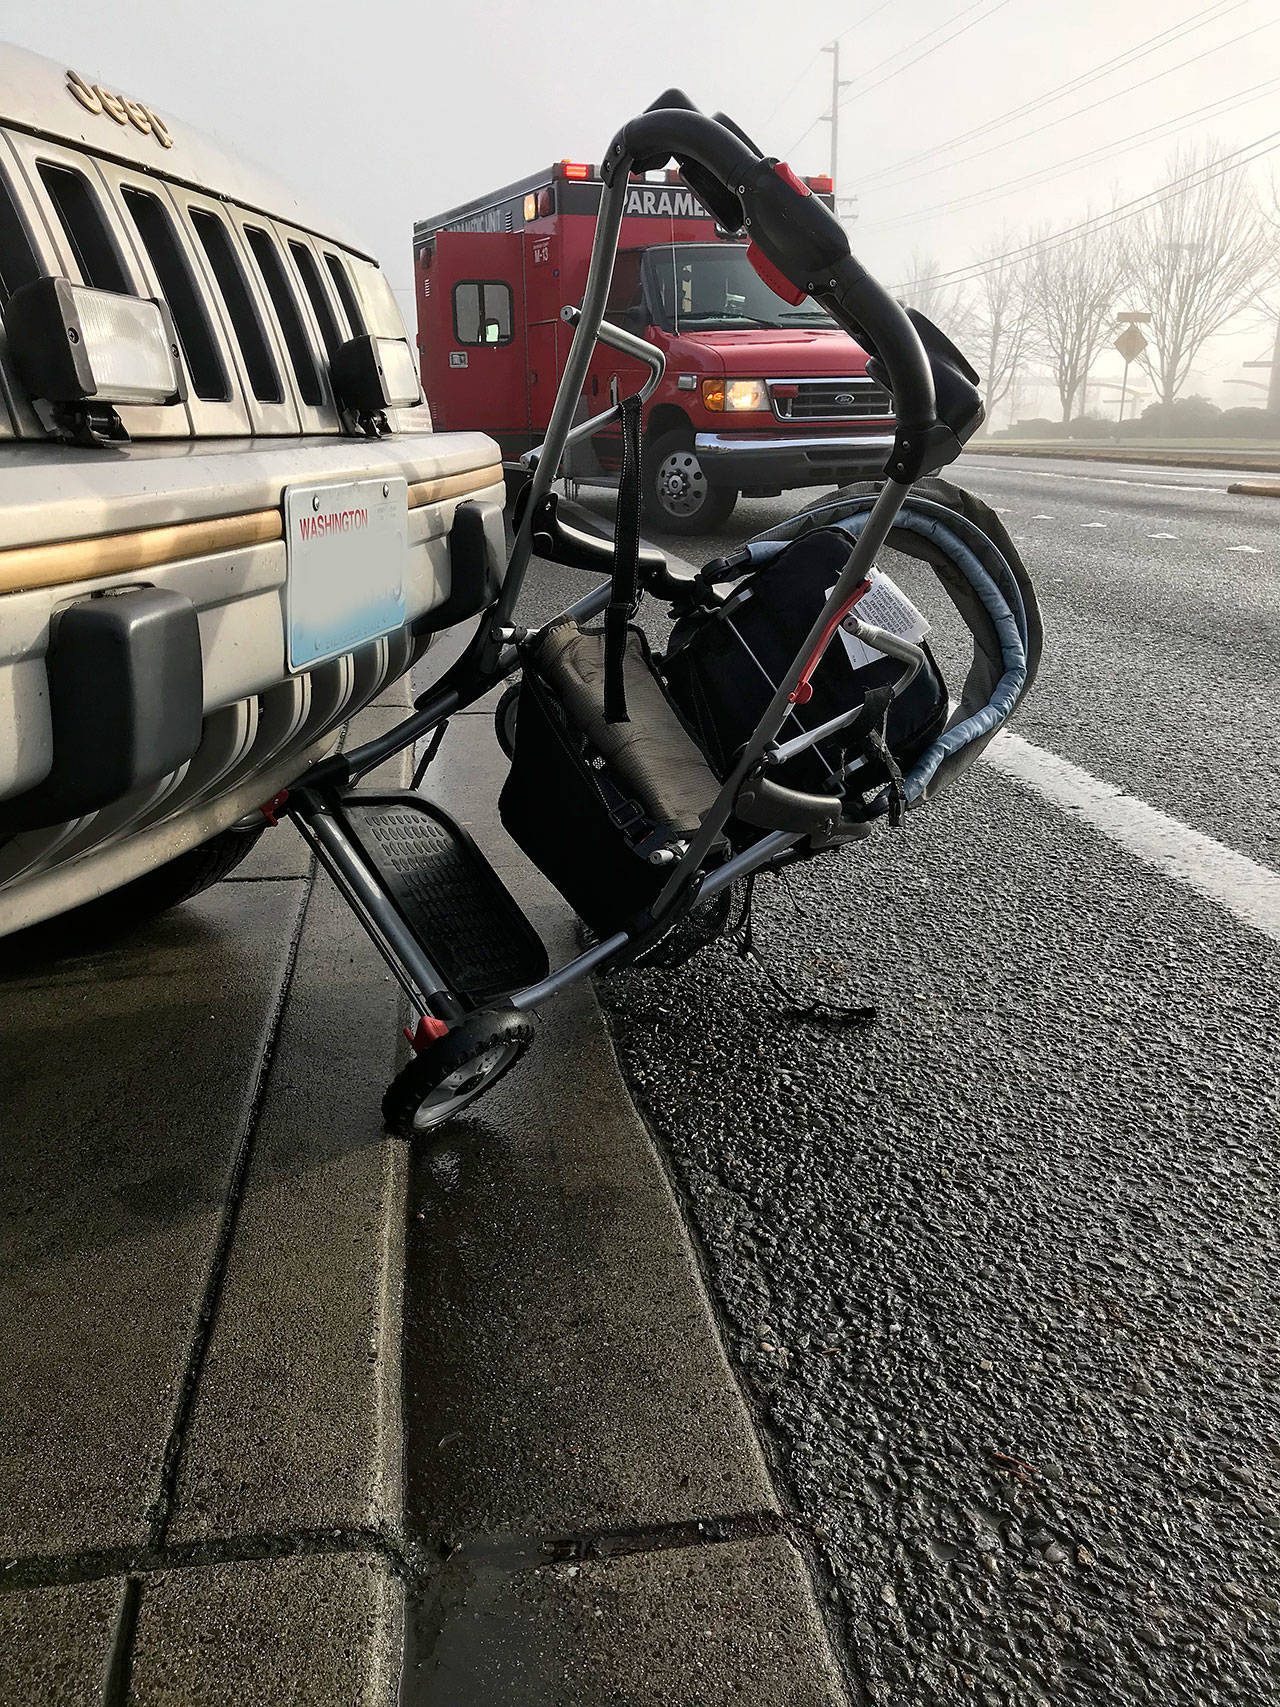 A Jeep struck Johanna Castillo and a stroller holding her 5-week-old son Dec. 4, north of Mill Creek. They weren't seriously hurt. (South Snohomish Fire and Rescue)